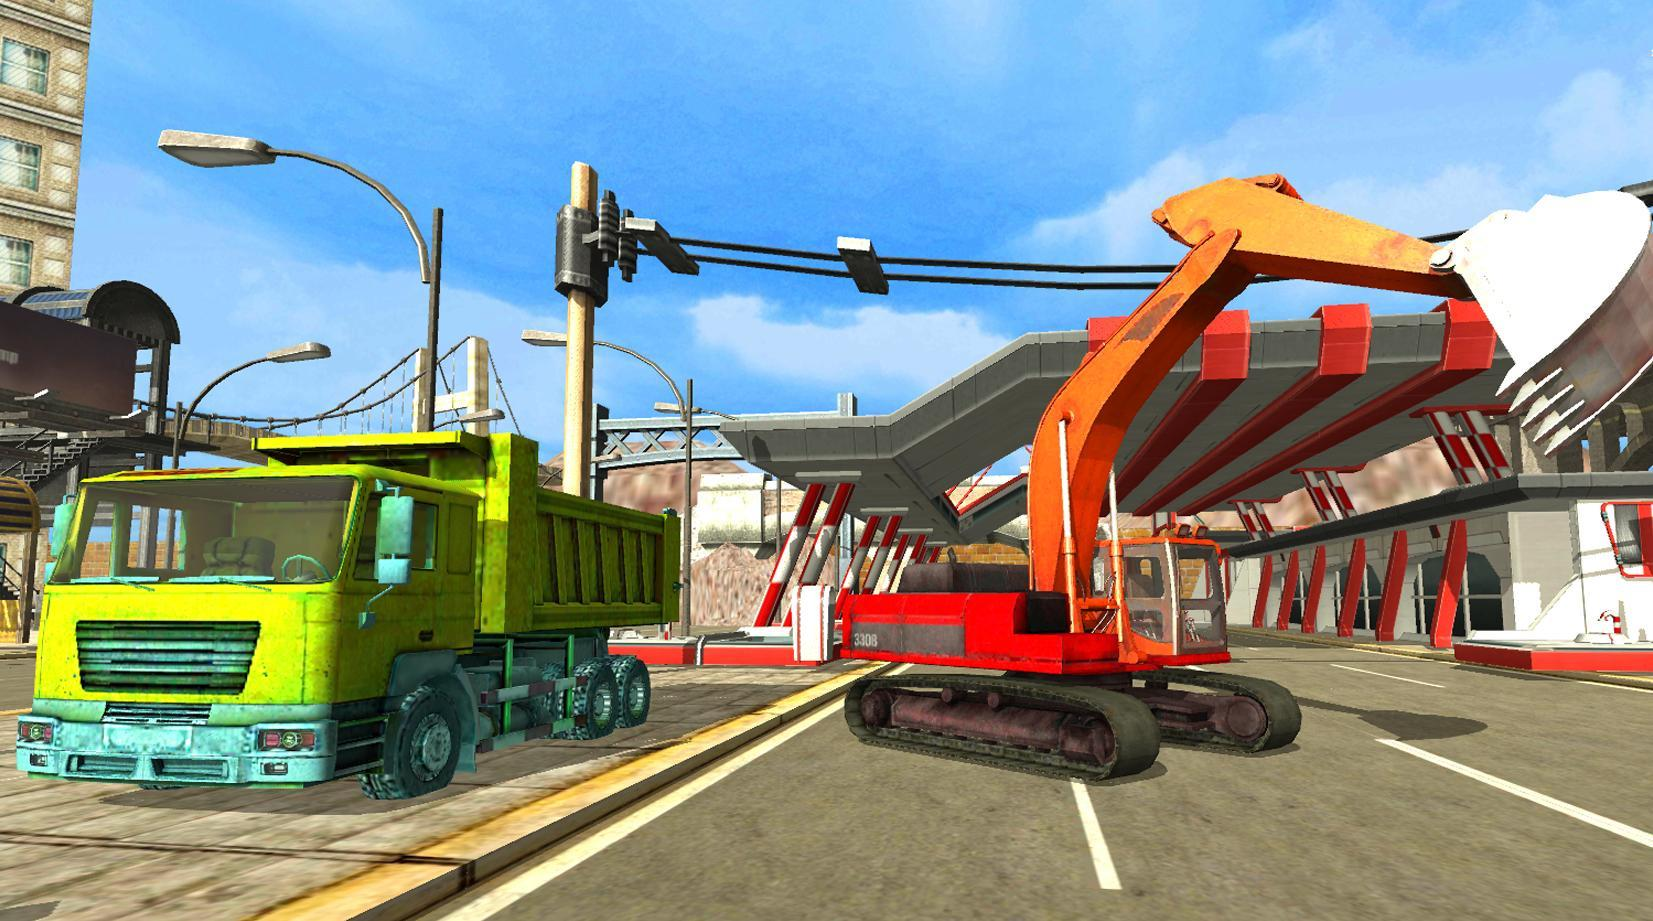 City Construction Simulator for Android - APK Download